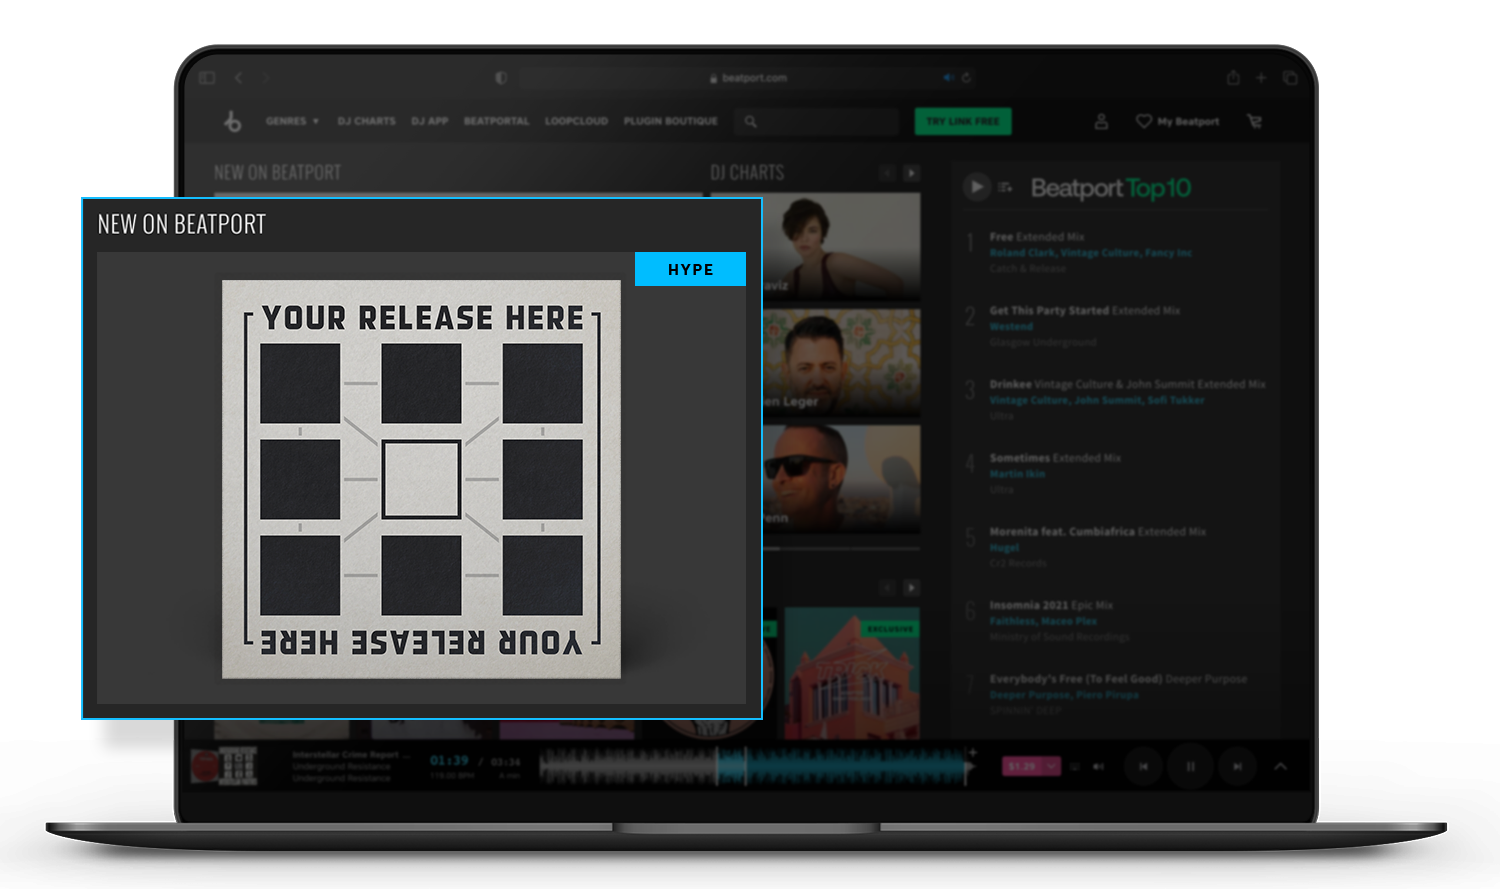 Beatport homepage feature space for hype releases